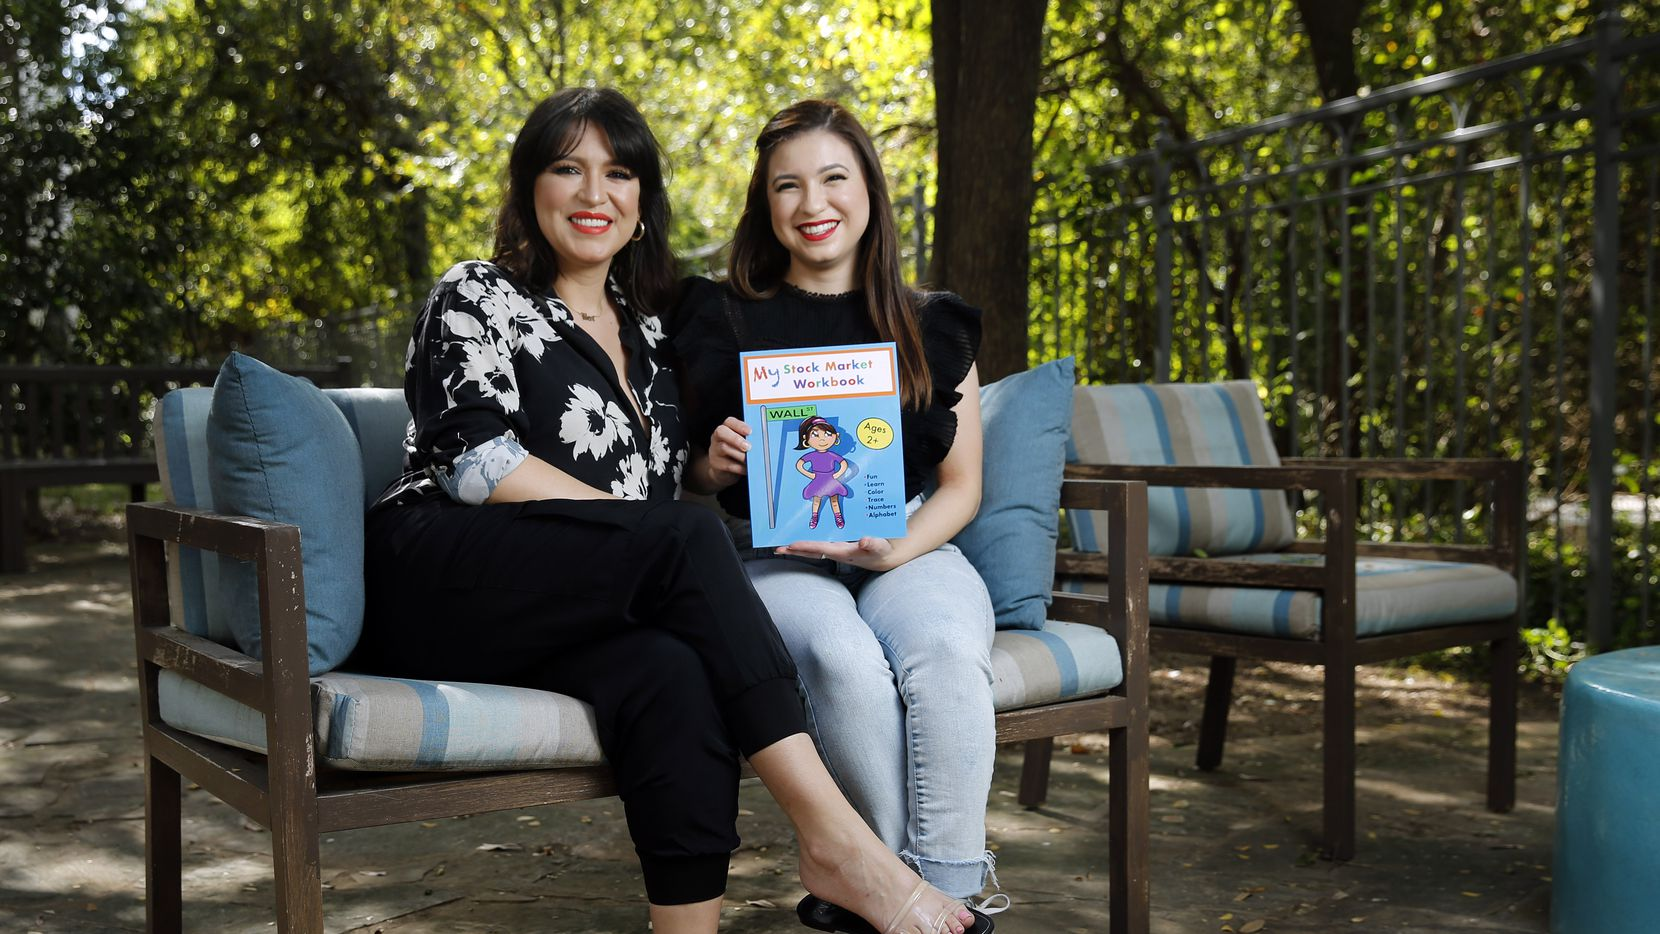 The Dallas mother-daughter duo of Linda Garcia (left) and Elizabeth Ruiz wrote My Stock Market Workbook, which seeks to teach young children about investing and generational wealth in a coloring book.